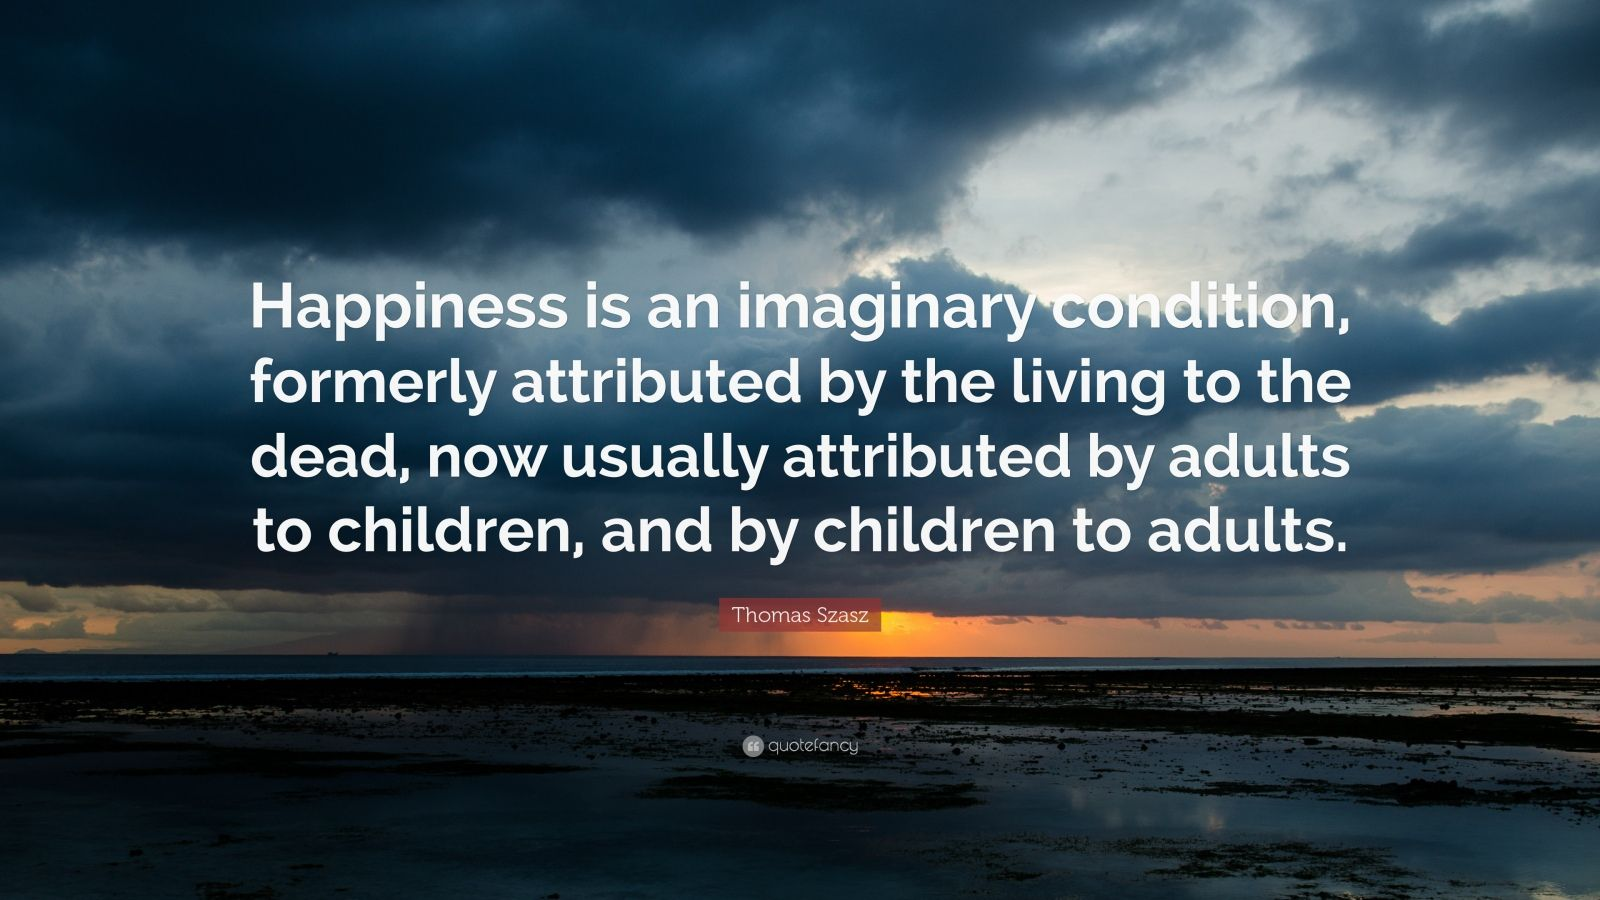 happiness is an imaginary condition The care of human life and happiness, and not their destruction, is the first and   happiness is an imaginary condition, formerly attributed by the living to the.